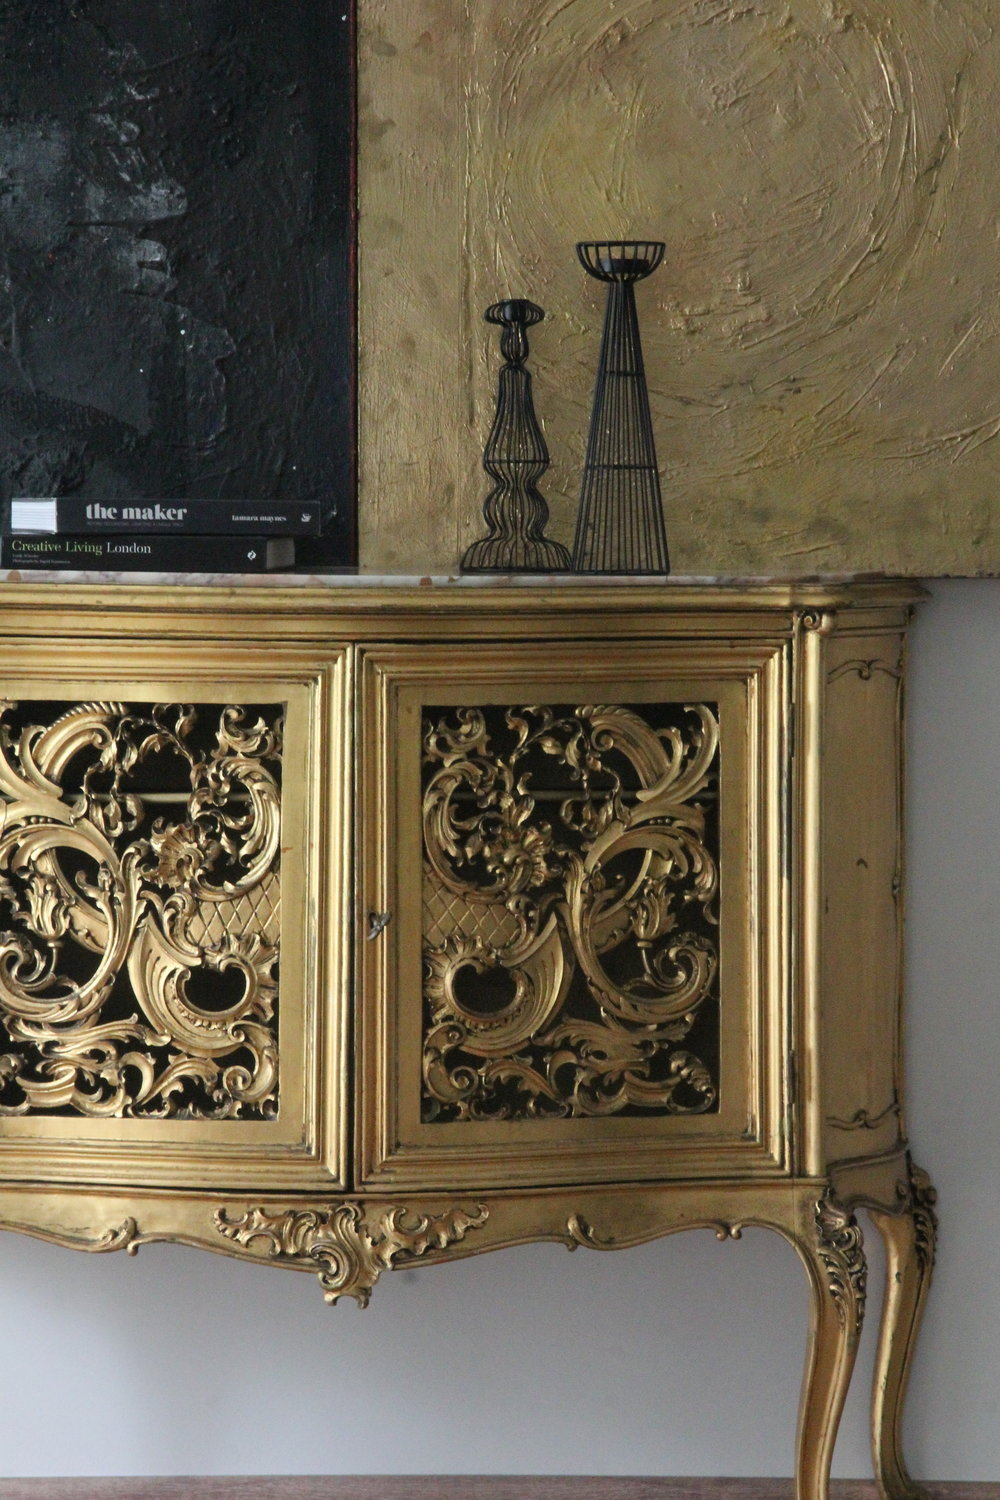 Antique sideboard and artwork